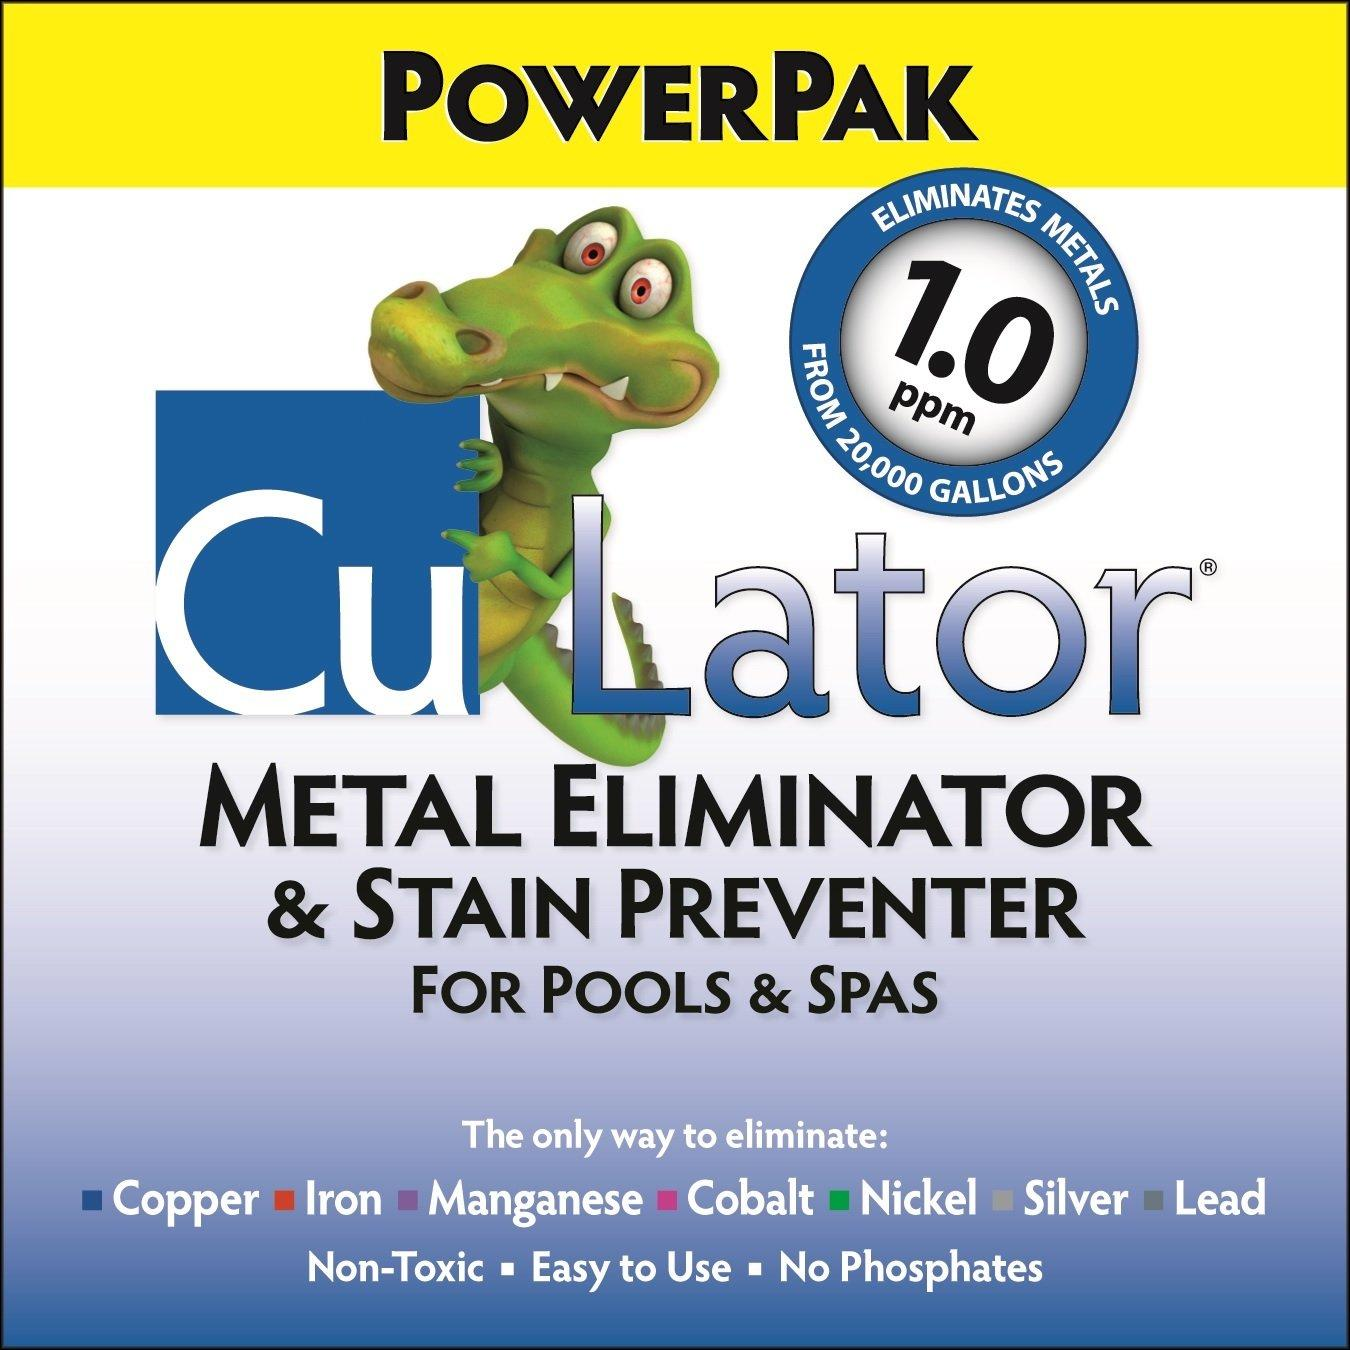 Culator Metal Remover And Stain Preventer For Pools And Spas